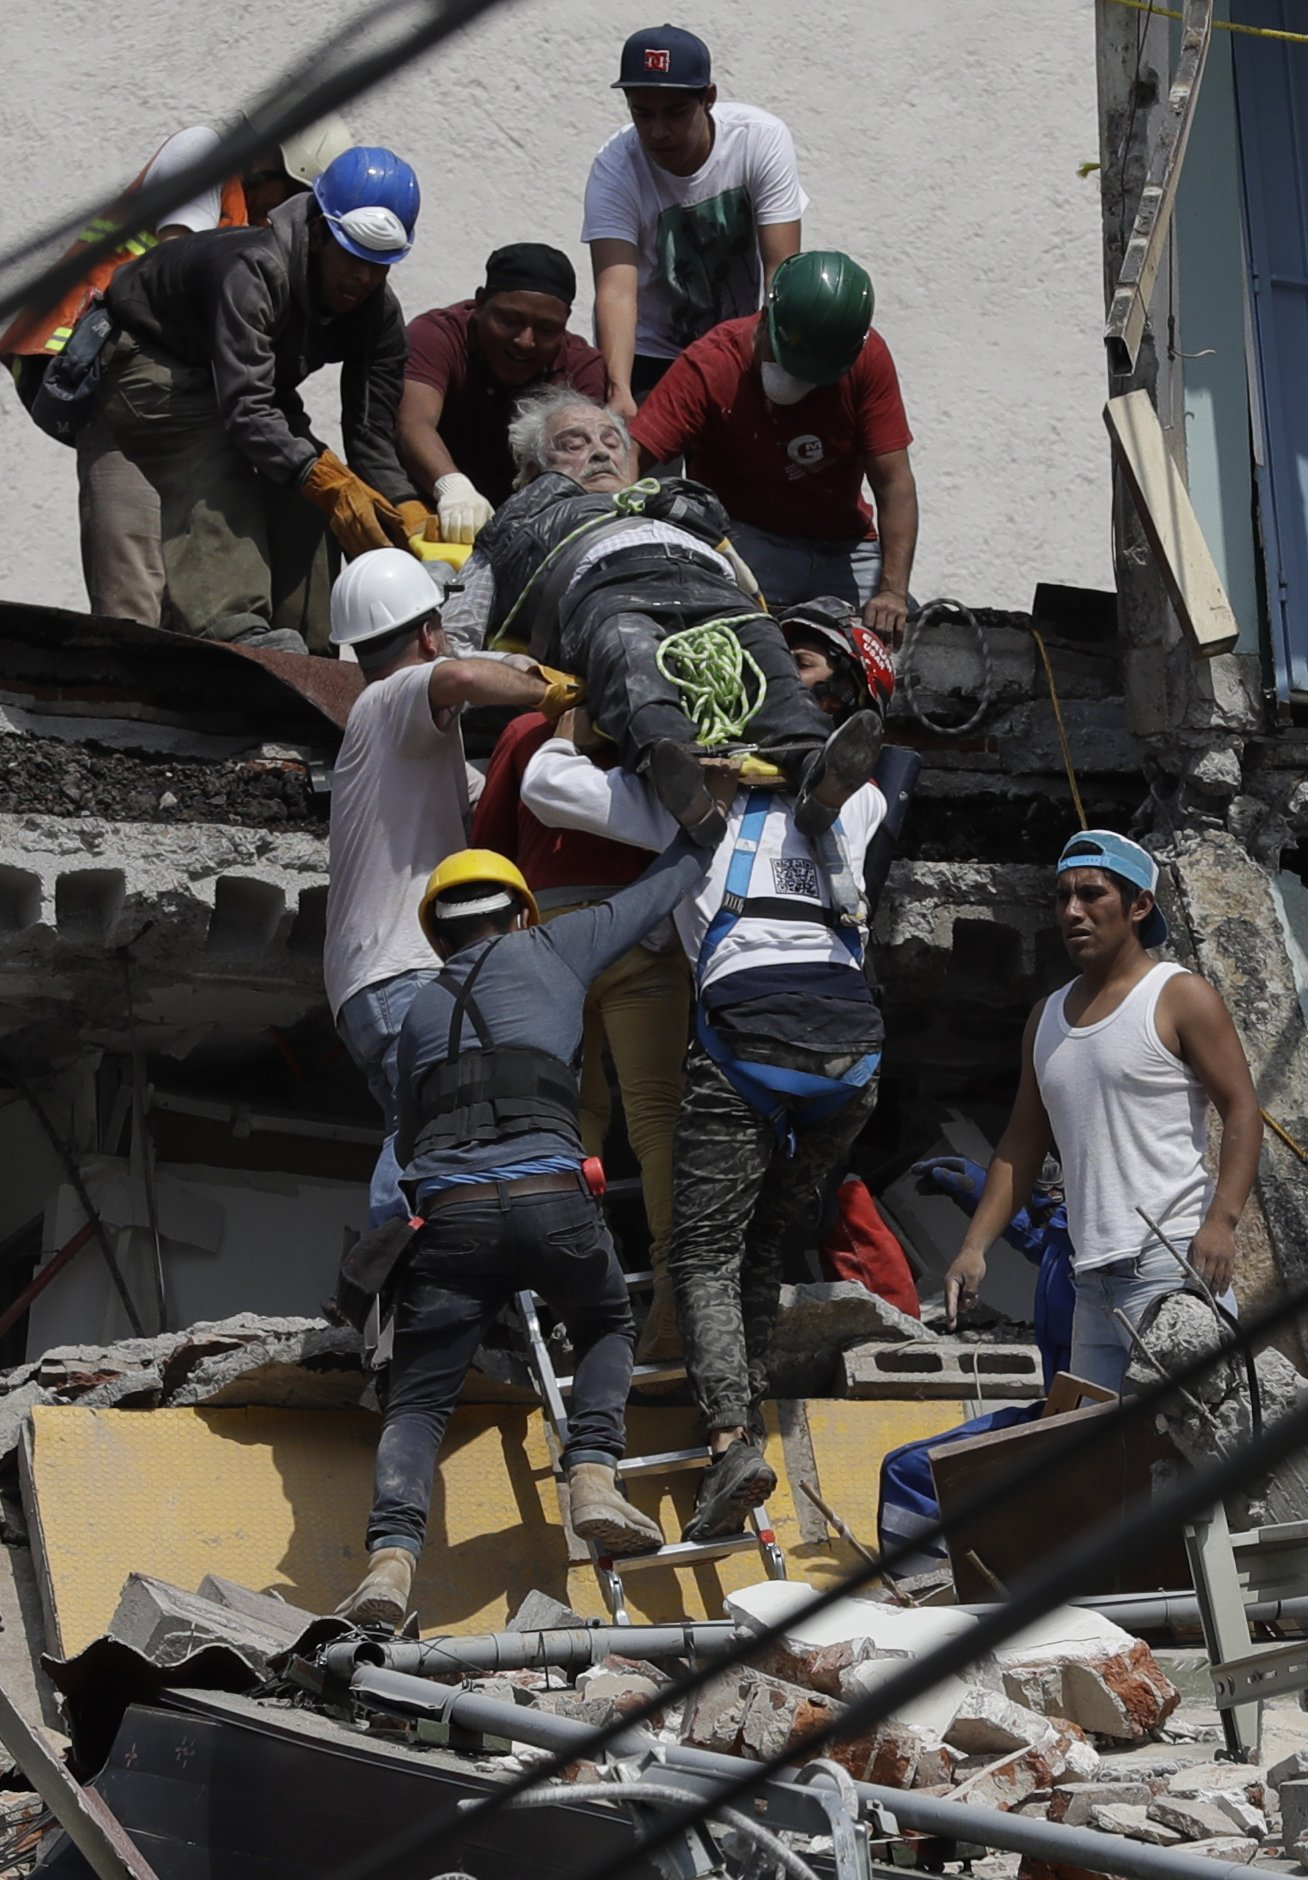 The Latest: Mexico City rescuers pull woman from rubble